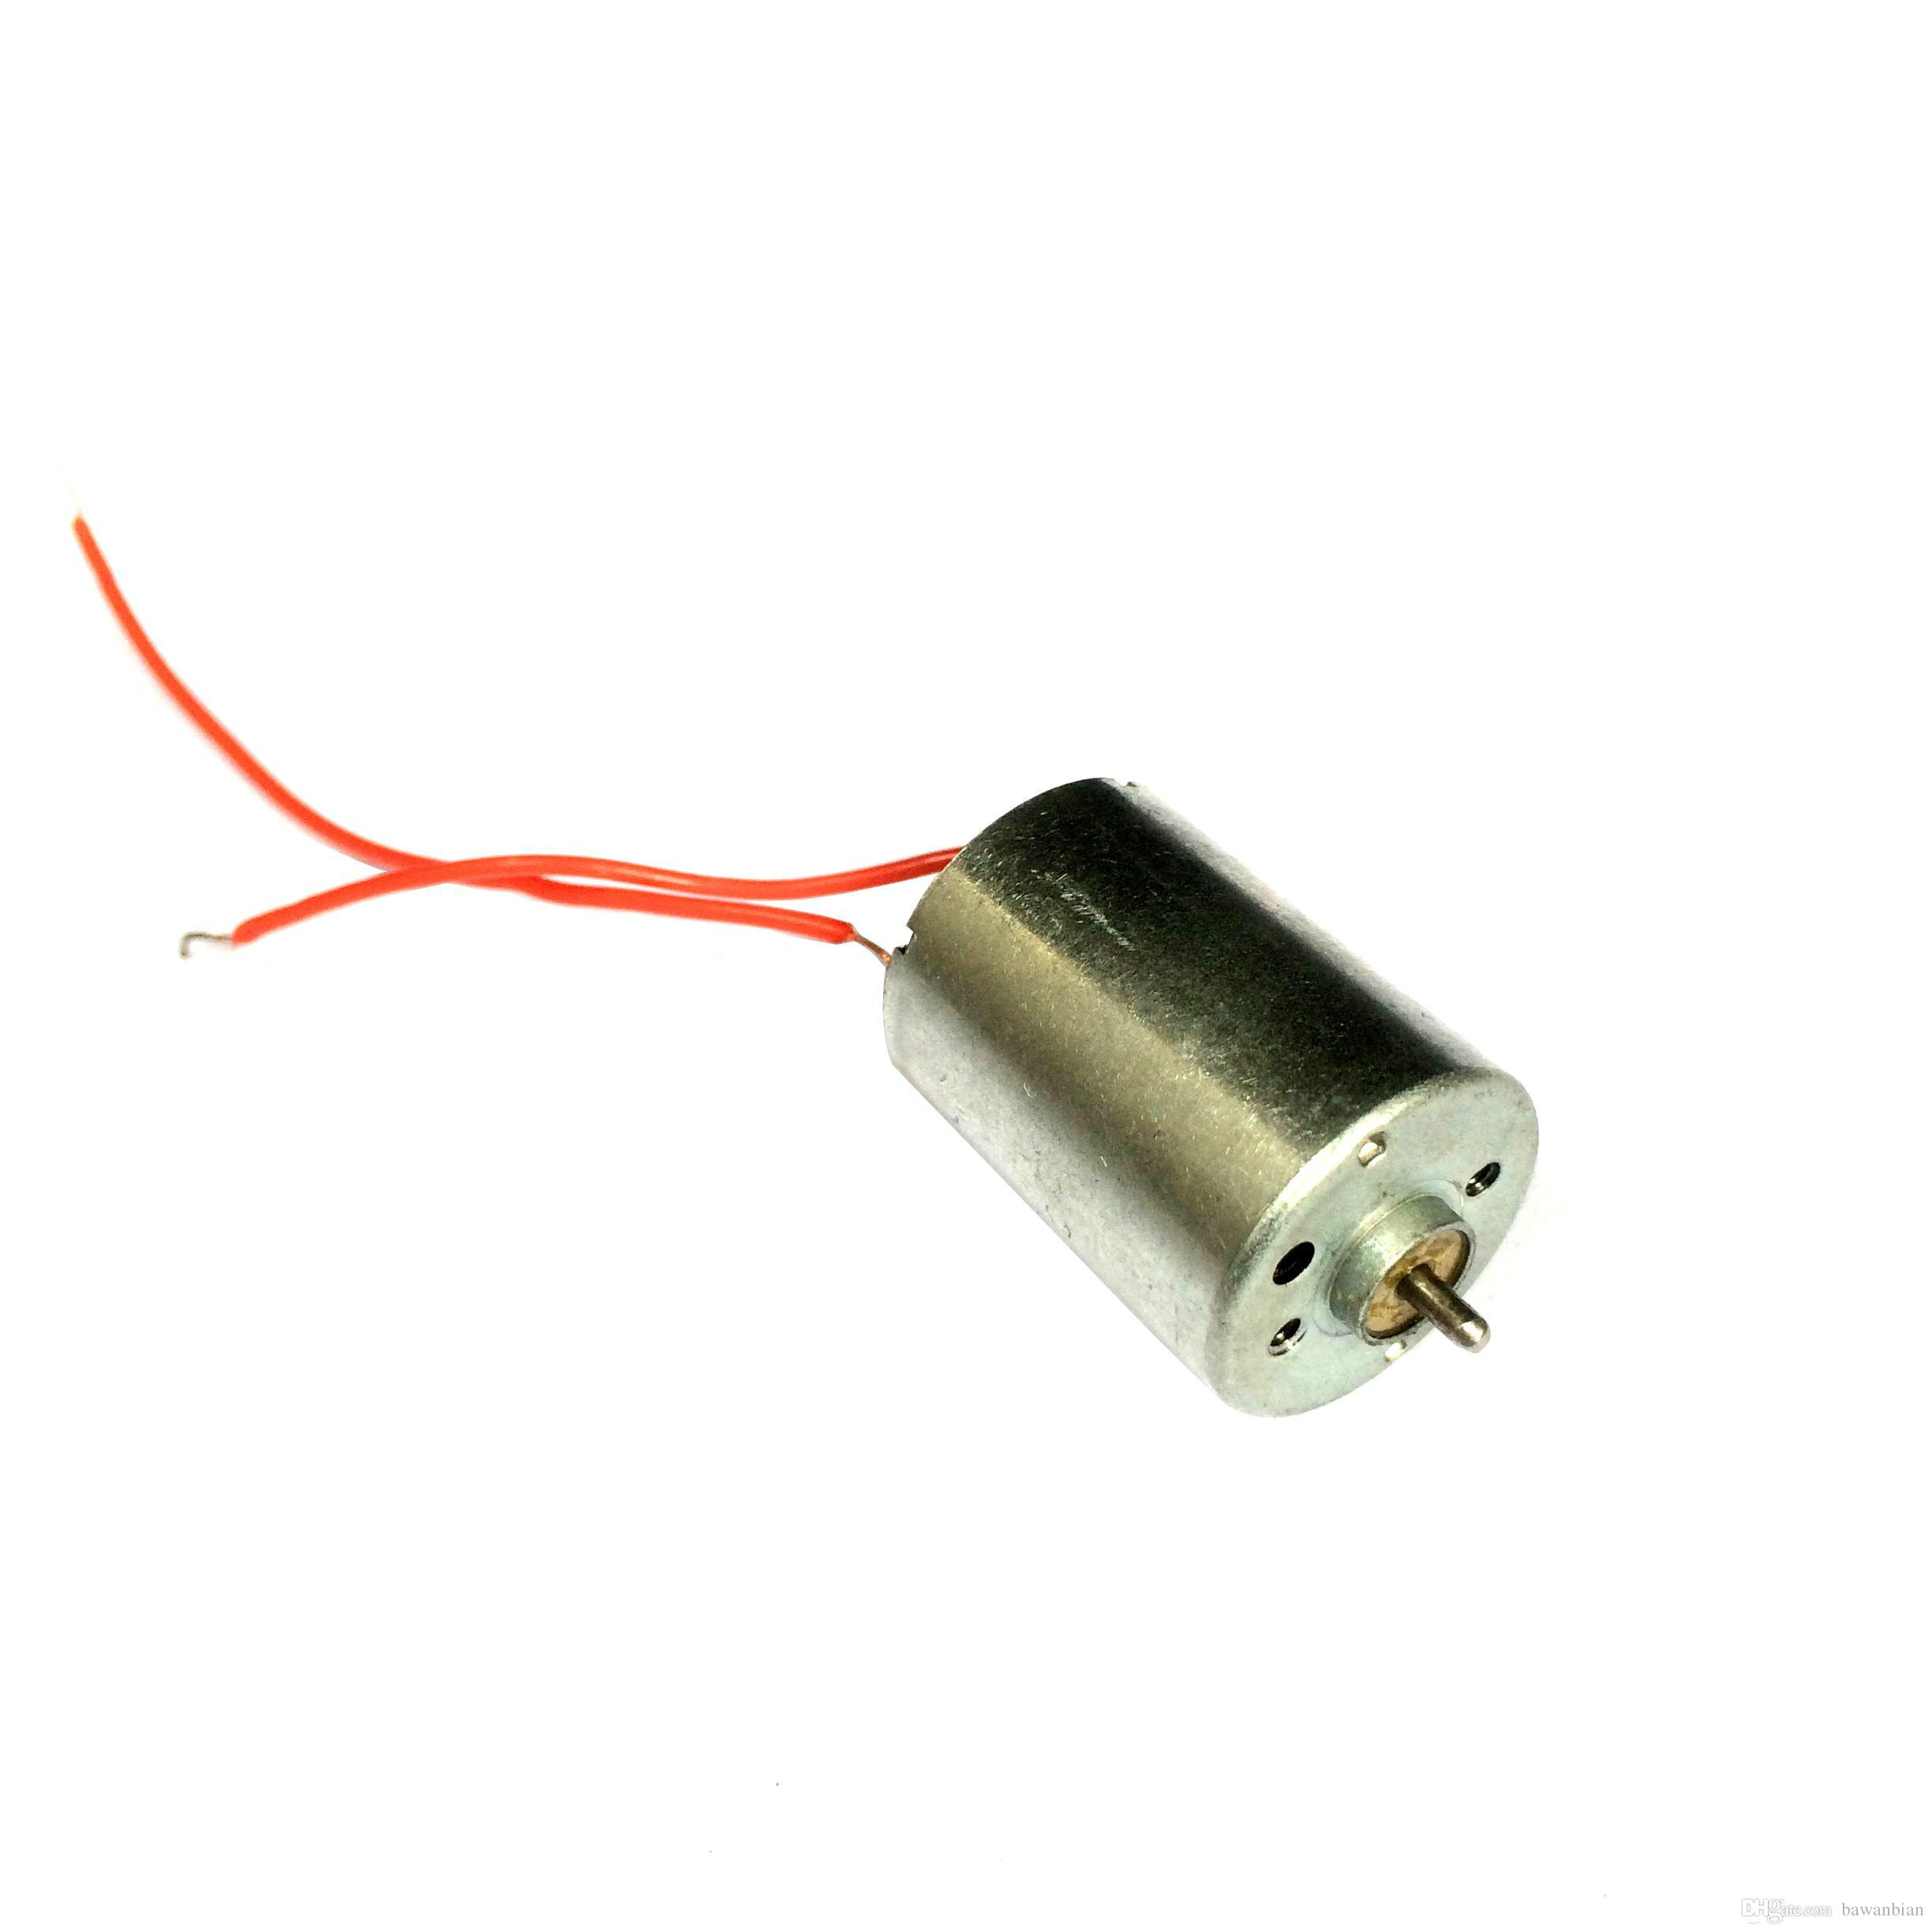 12v 5w Free Shipping One Pc Bjt Dc Motor 12v 5w For Rotary Tattoo Machine Tattoo Motor Parts Replacement Motor For Tattoo Rotary Machine